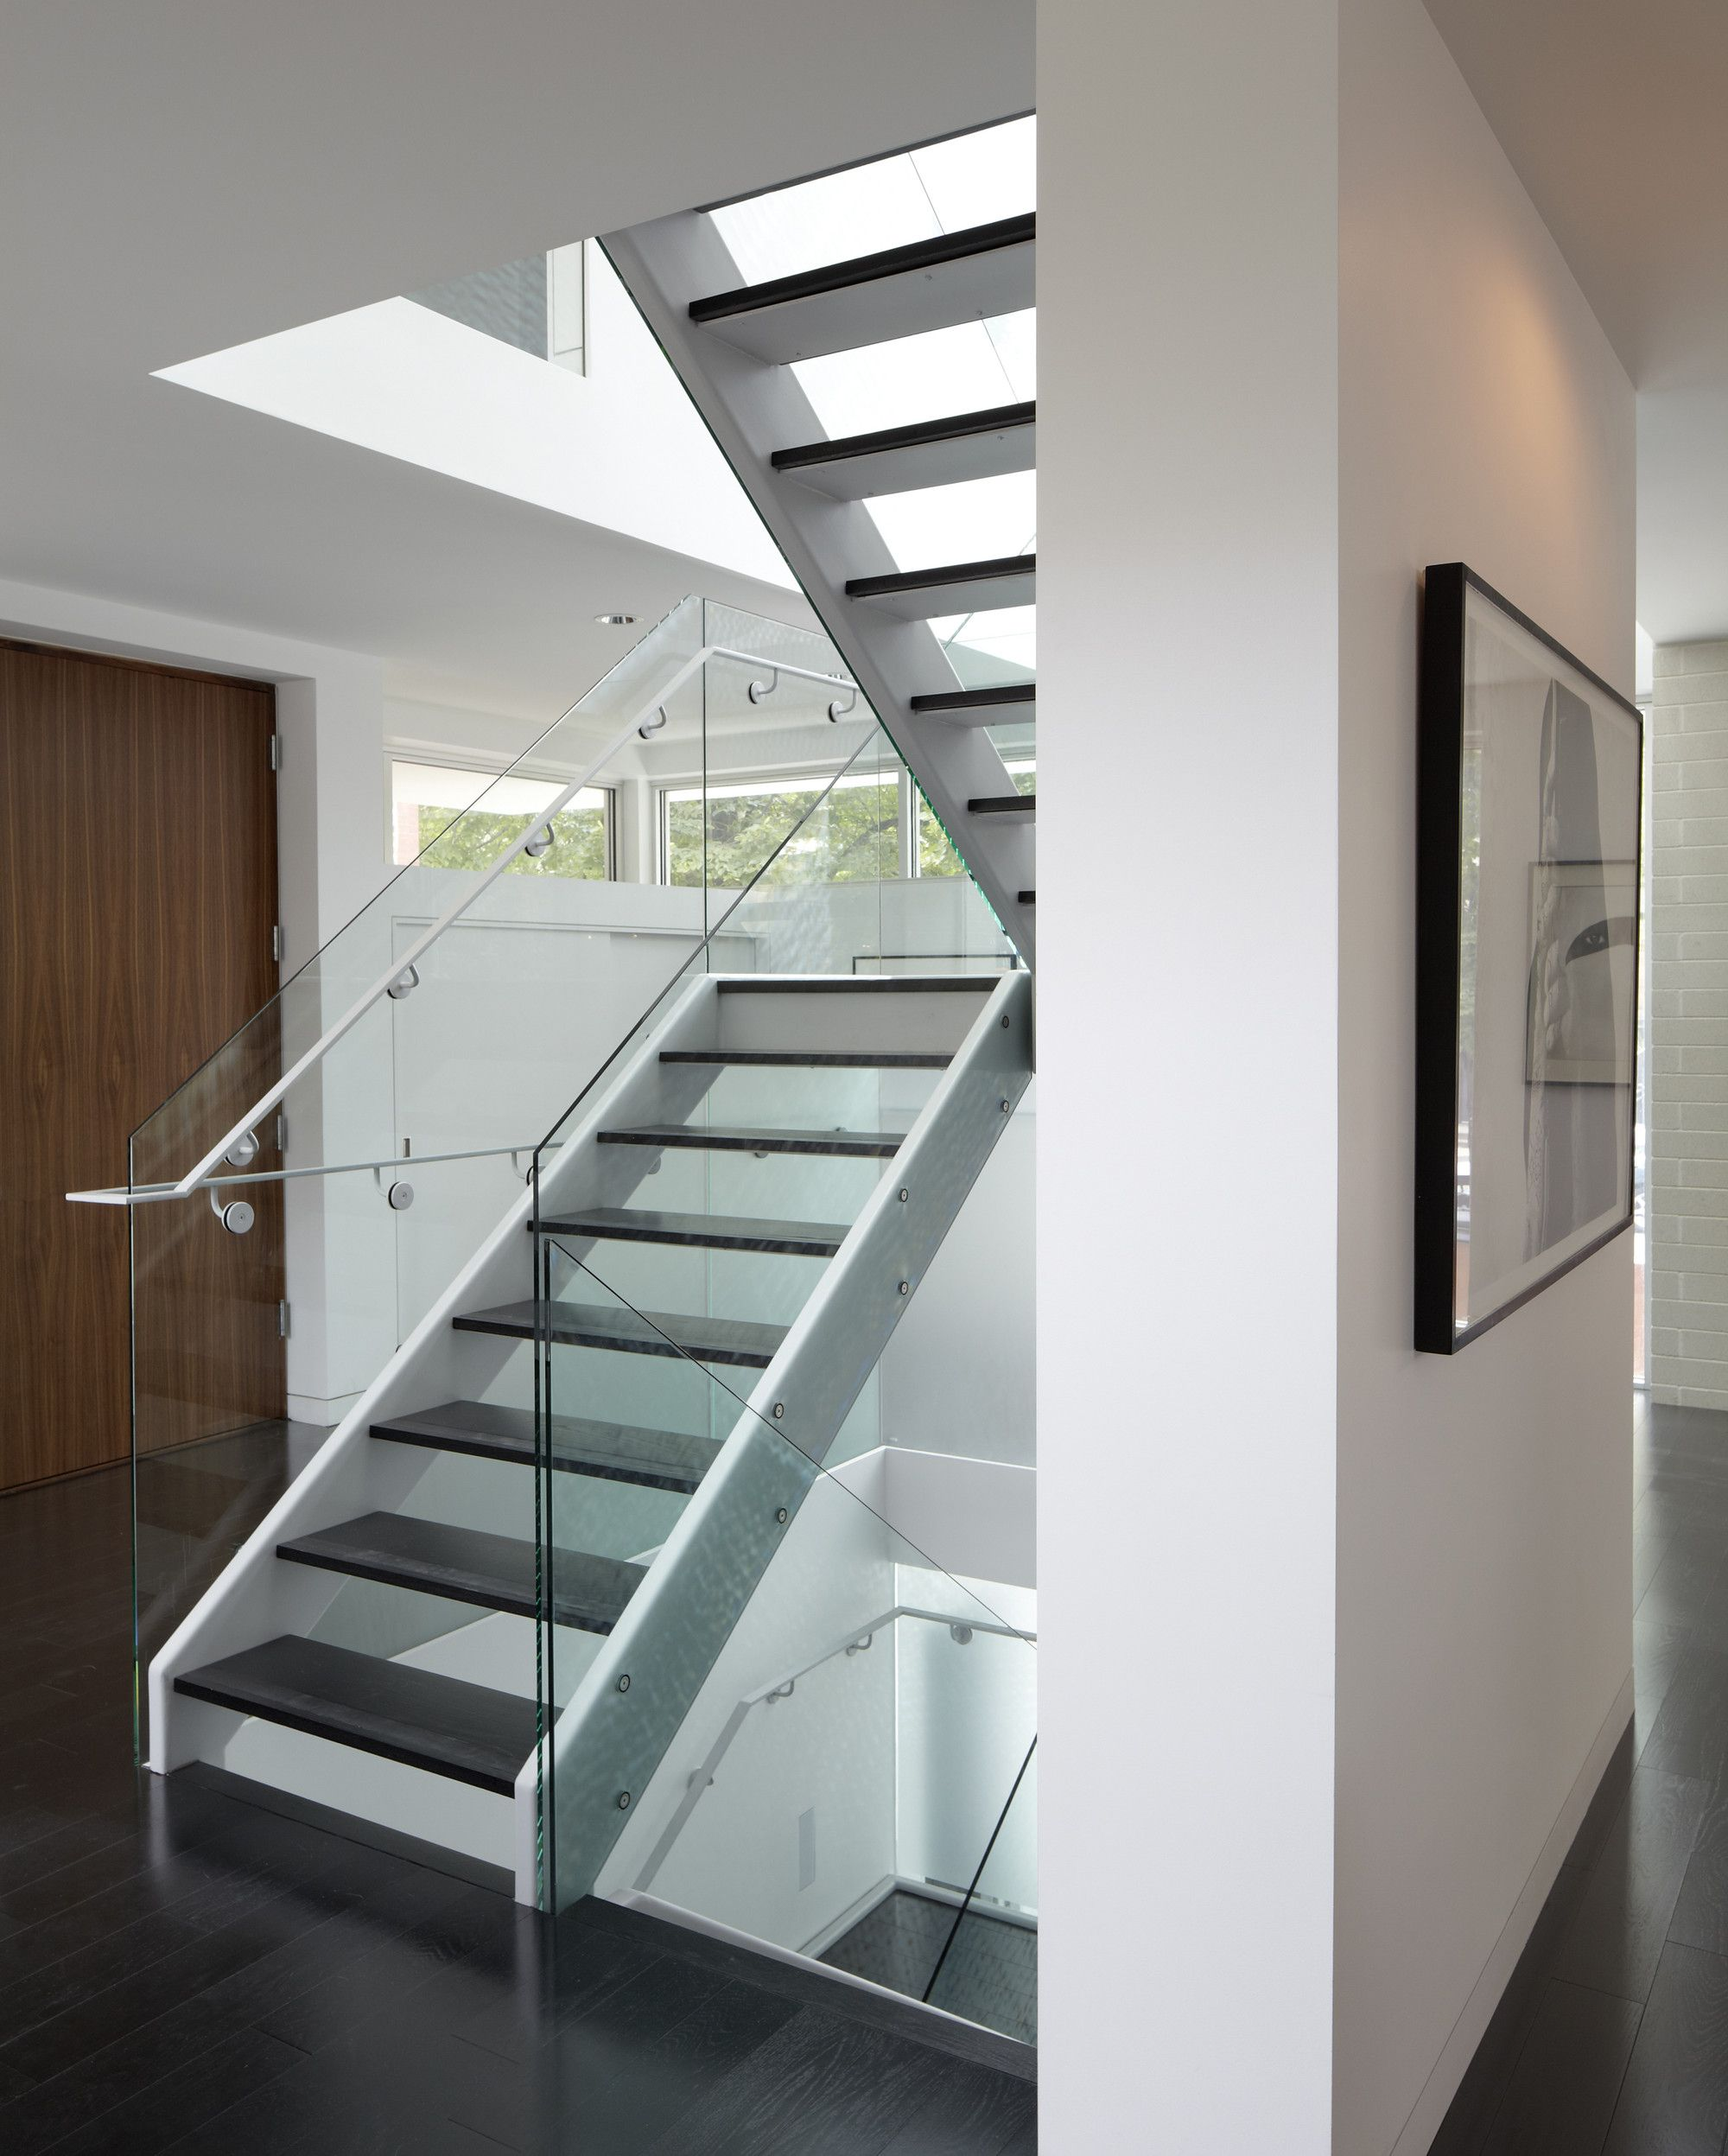 Best Transparent Staircase Plan Featured Near Glass Balustrade 400 x 300